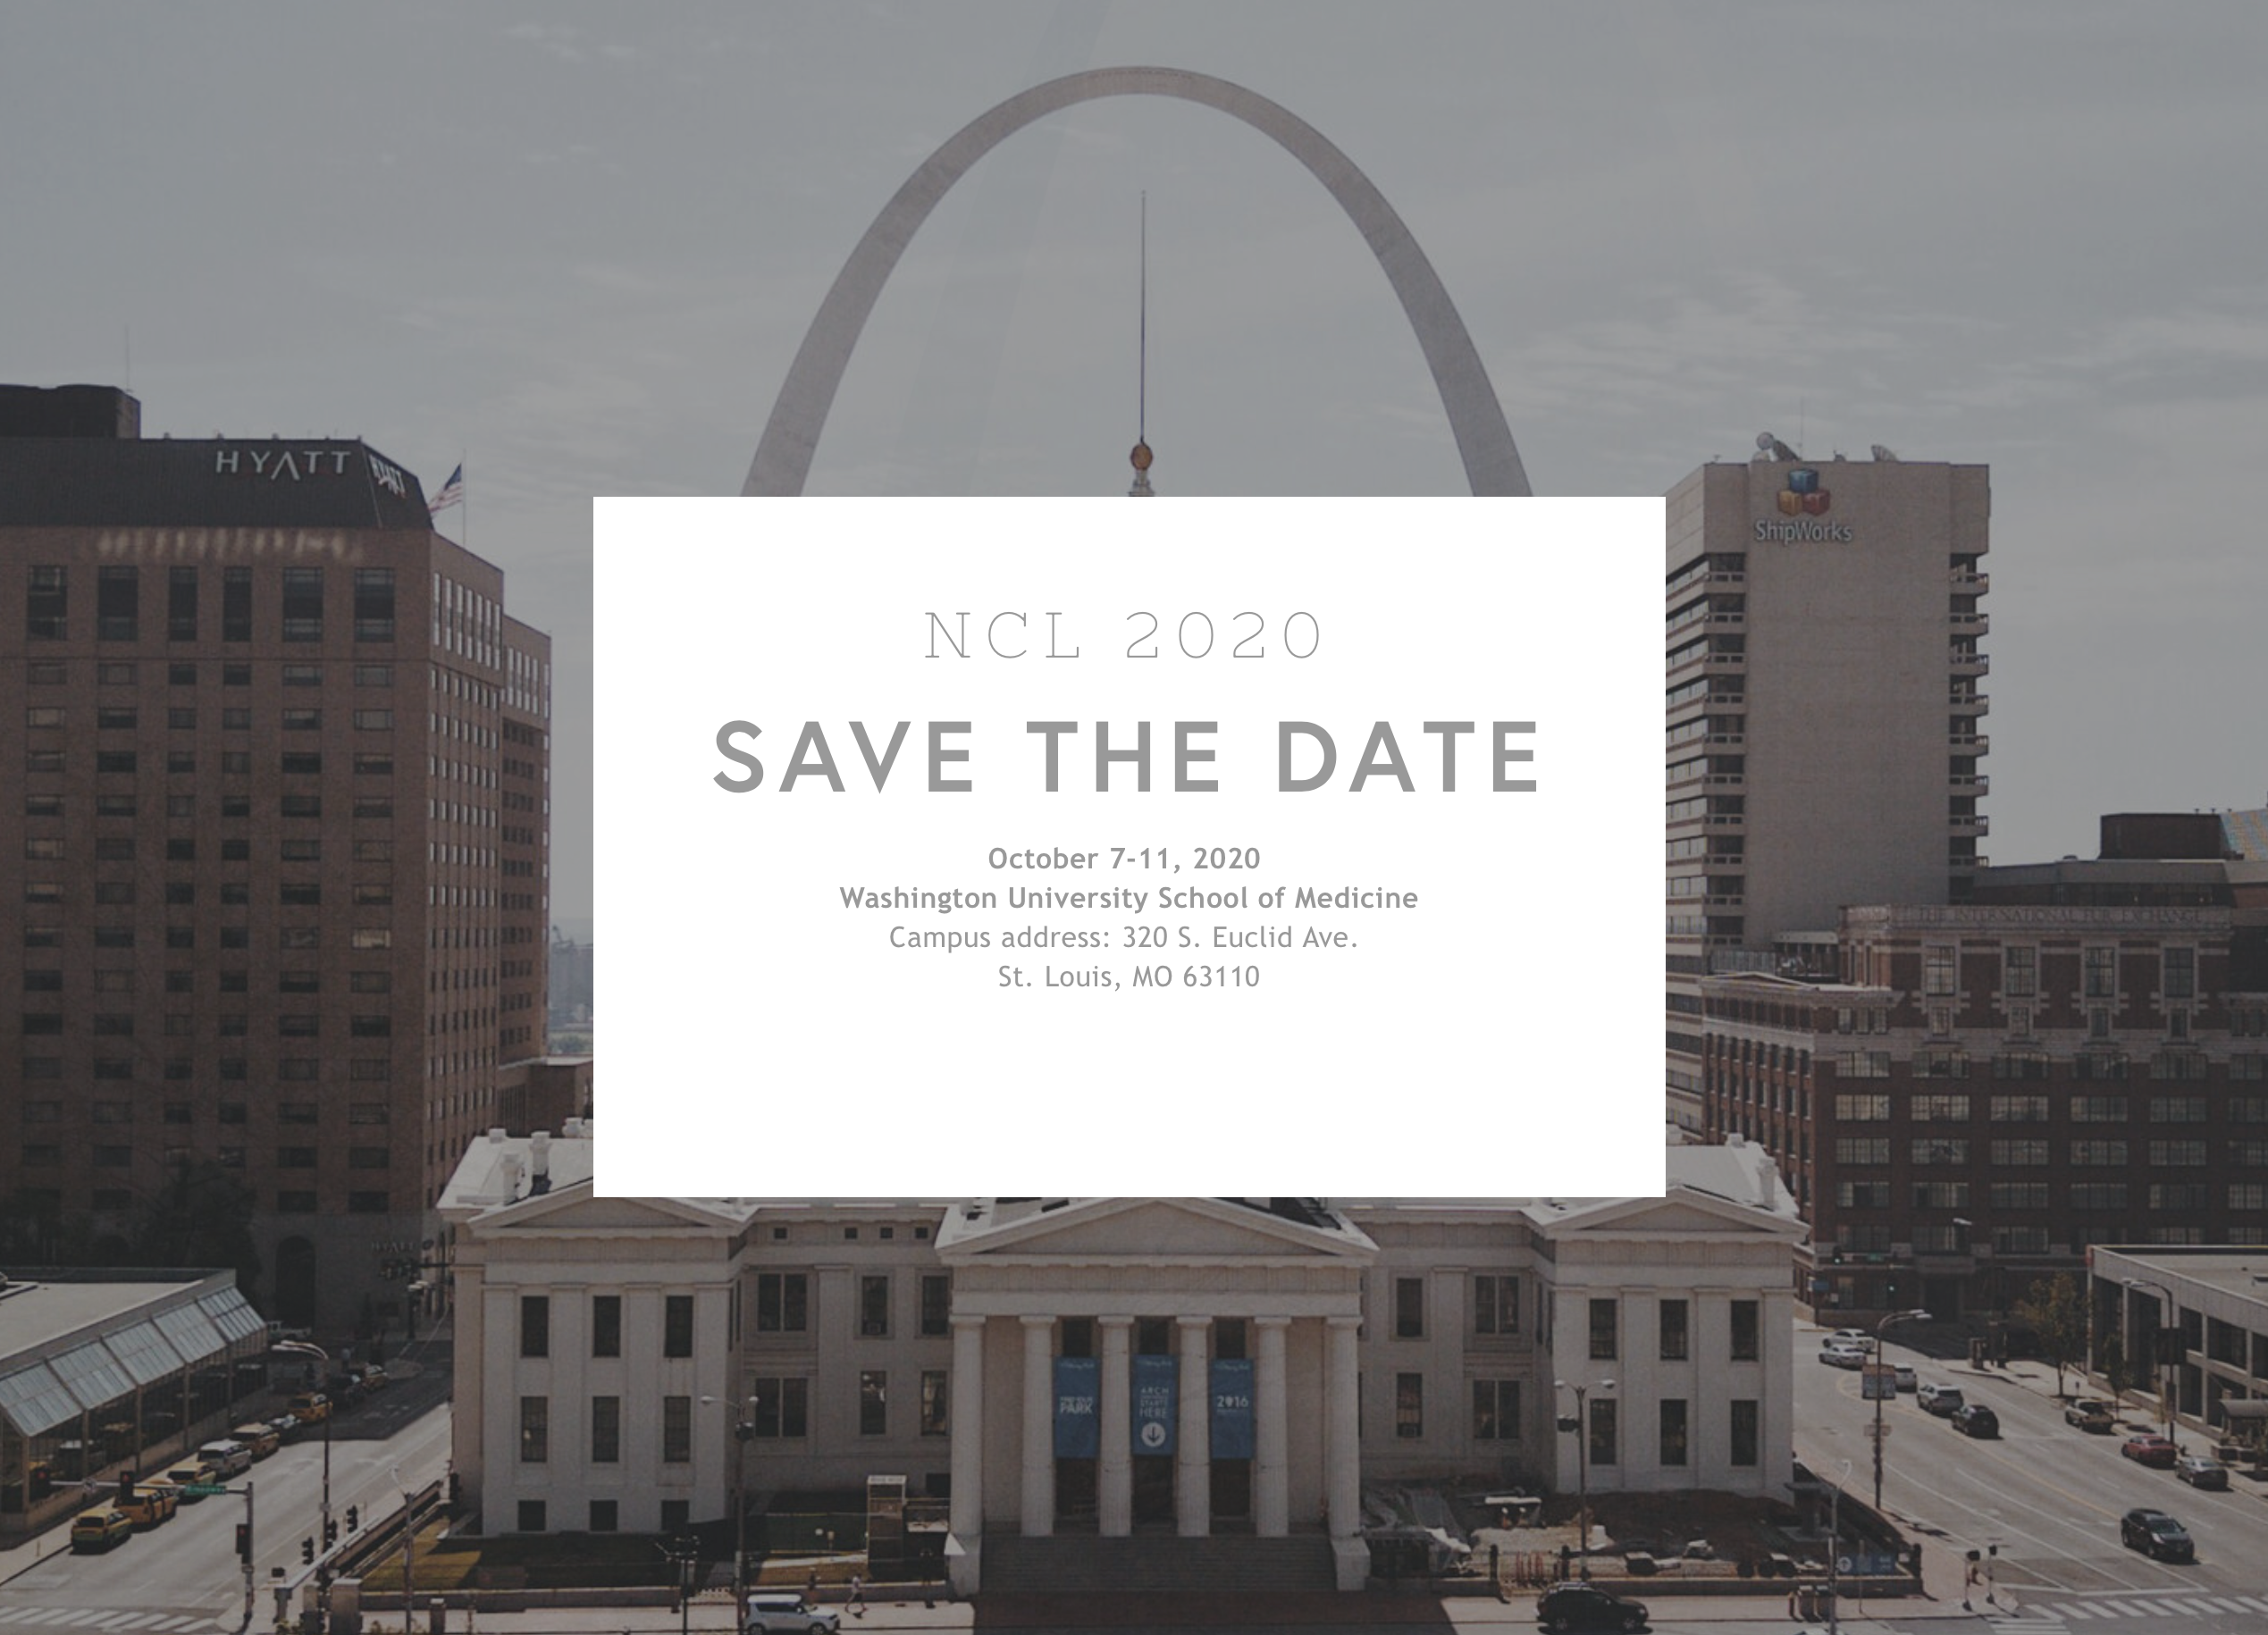 NCL 2020 announcement